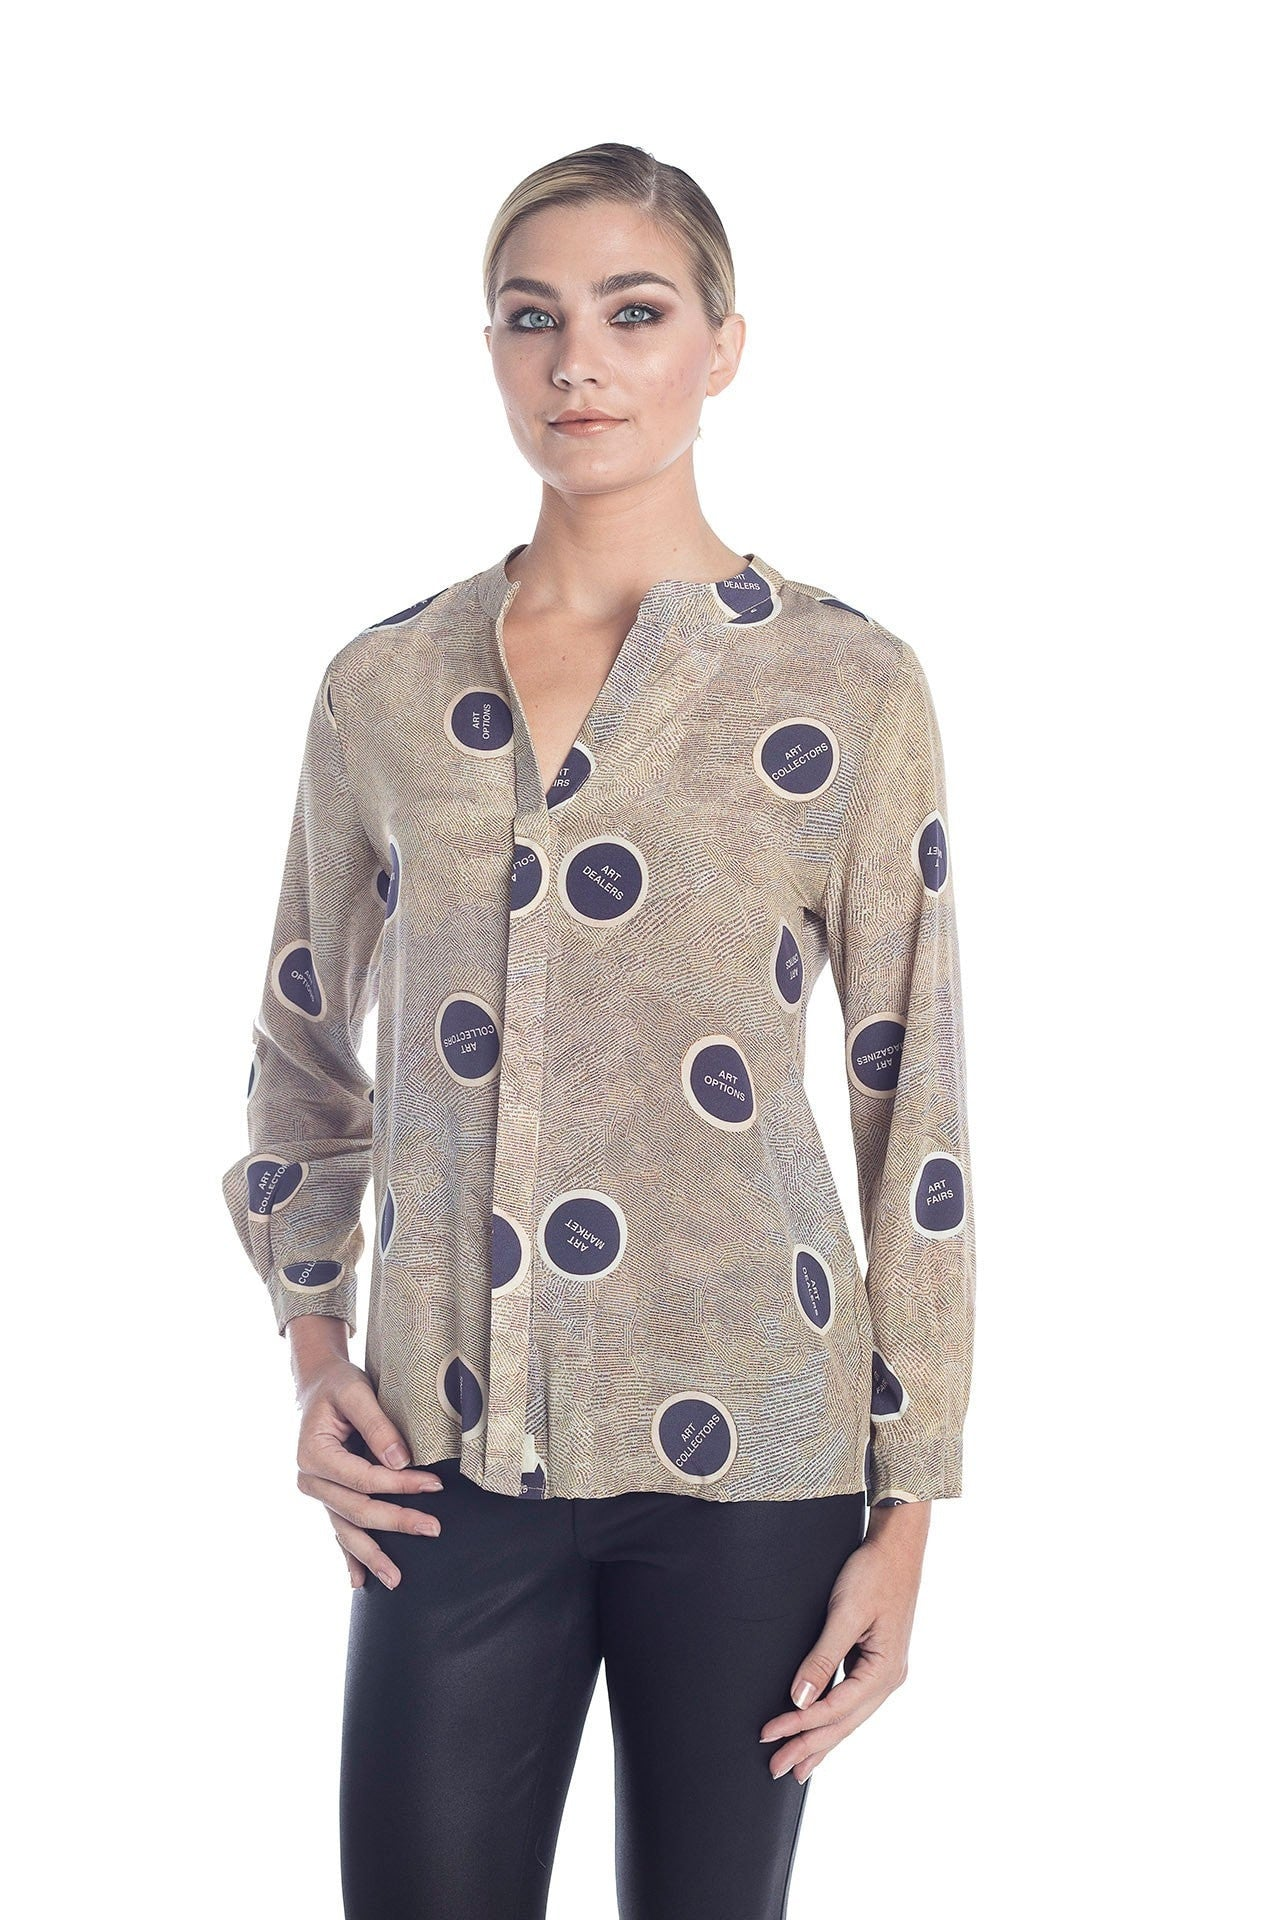 Muse Silk Blouse - Art World Print Blouses - artTECA